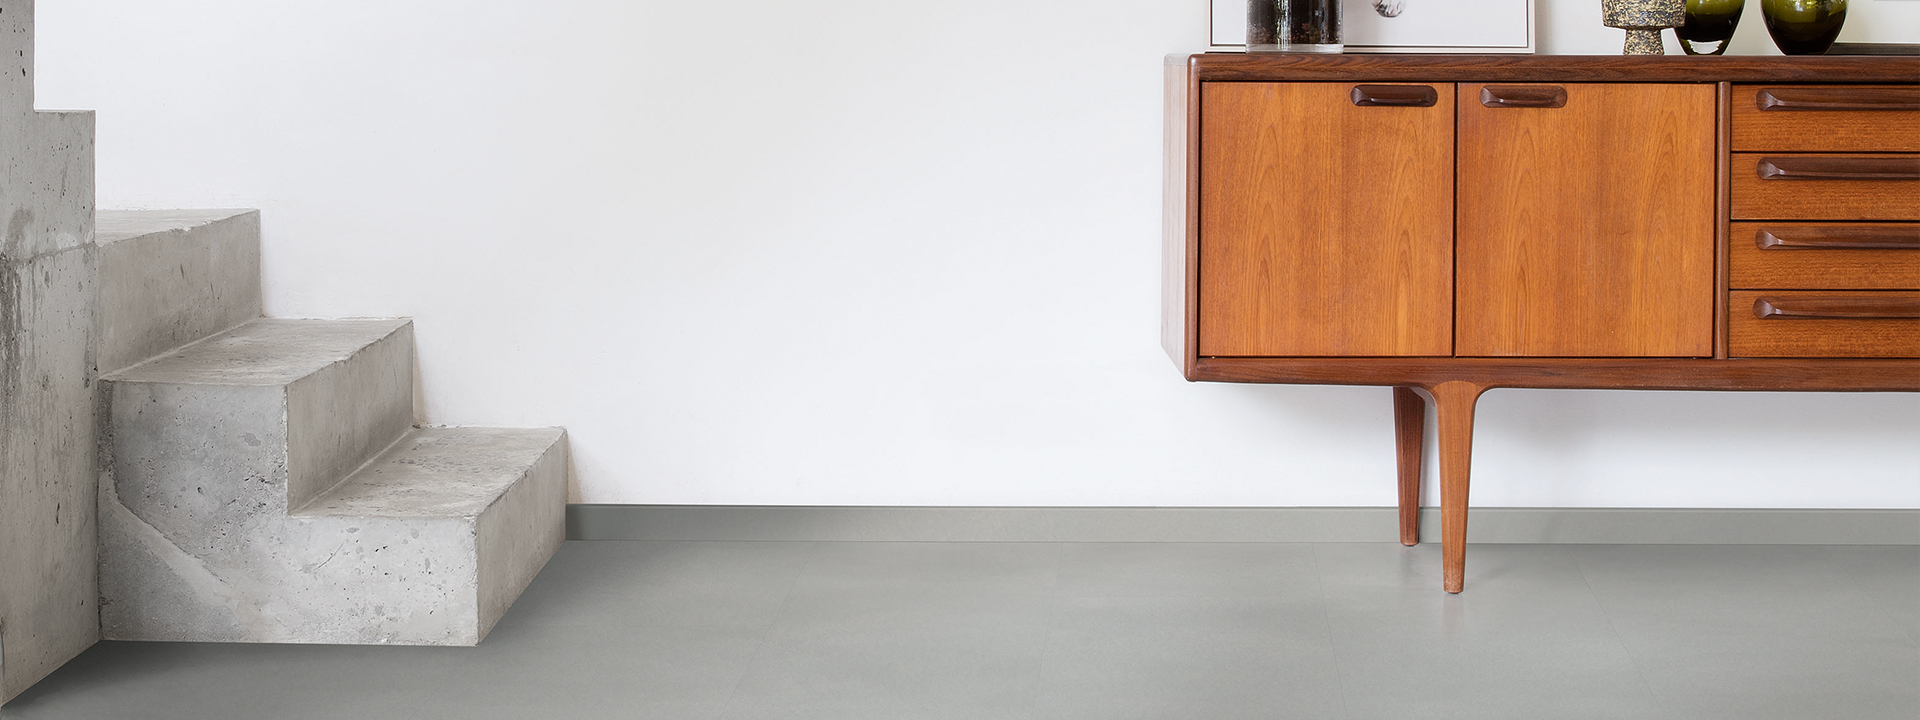 The Raw Look Of Concrete The Advantages Of Laminate